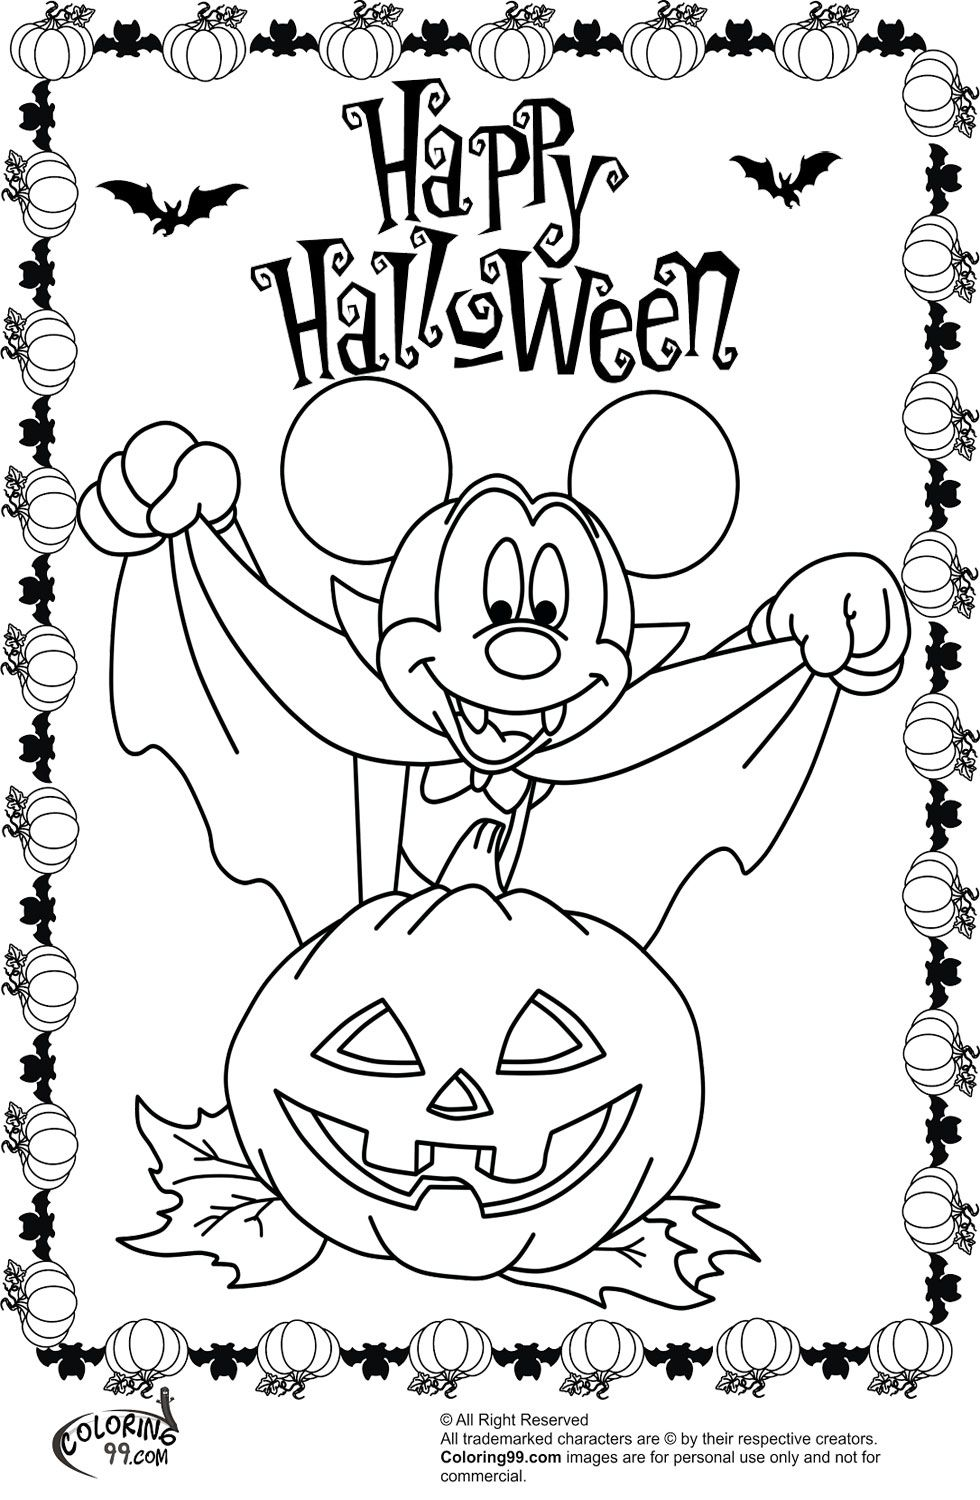 980x1500 Minnie And Mickey Mouse Coloring Pages For Halloween Team Colors